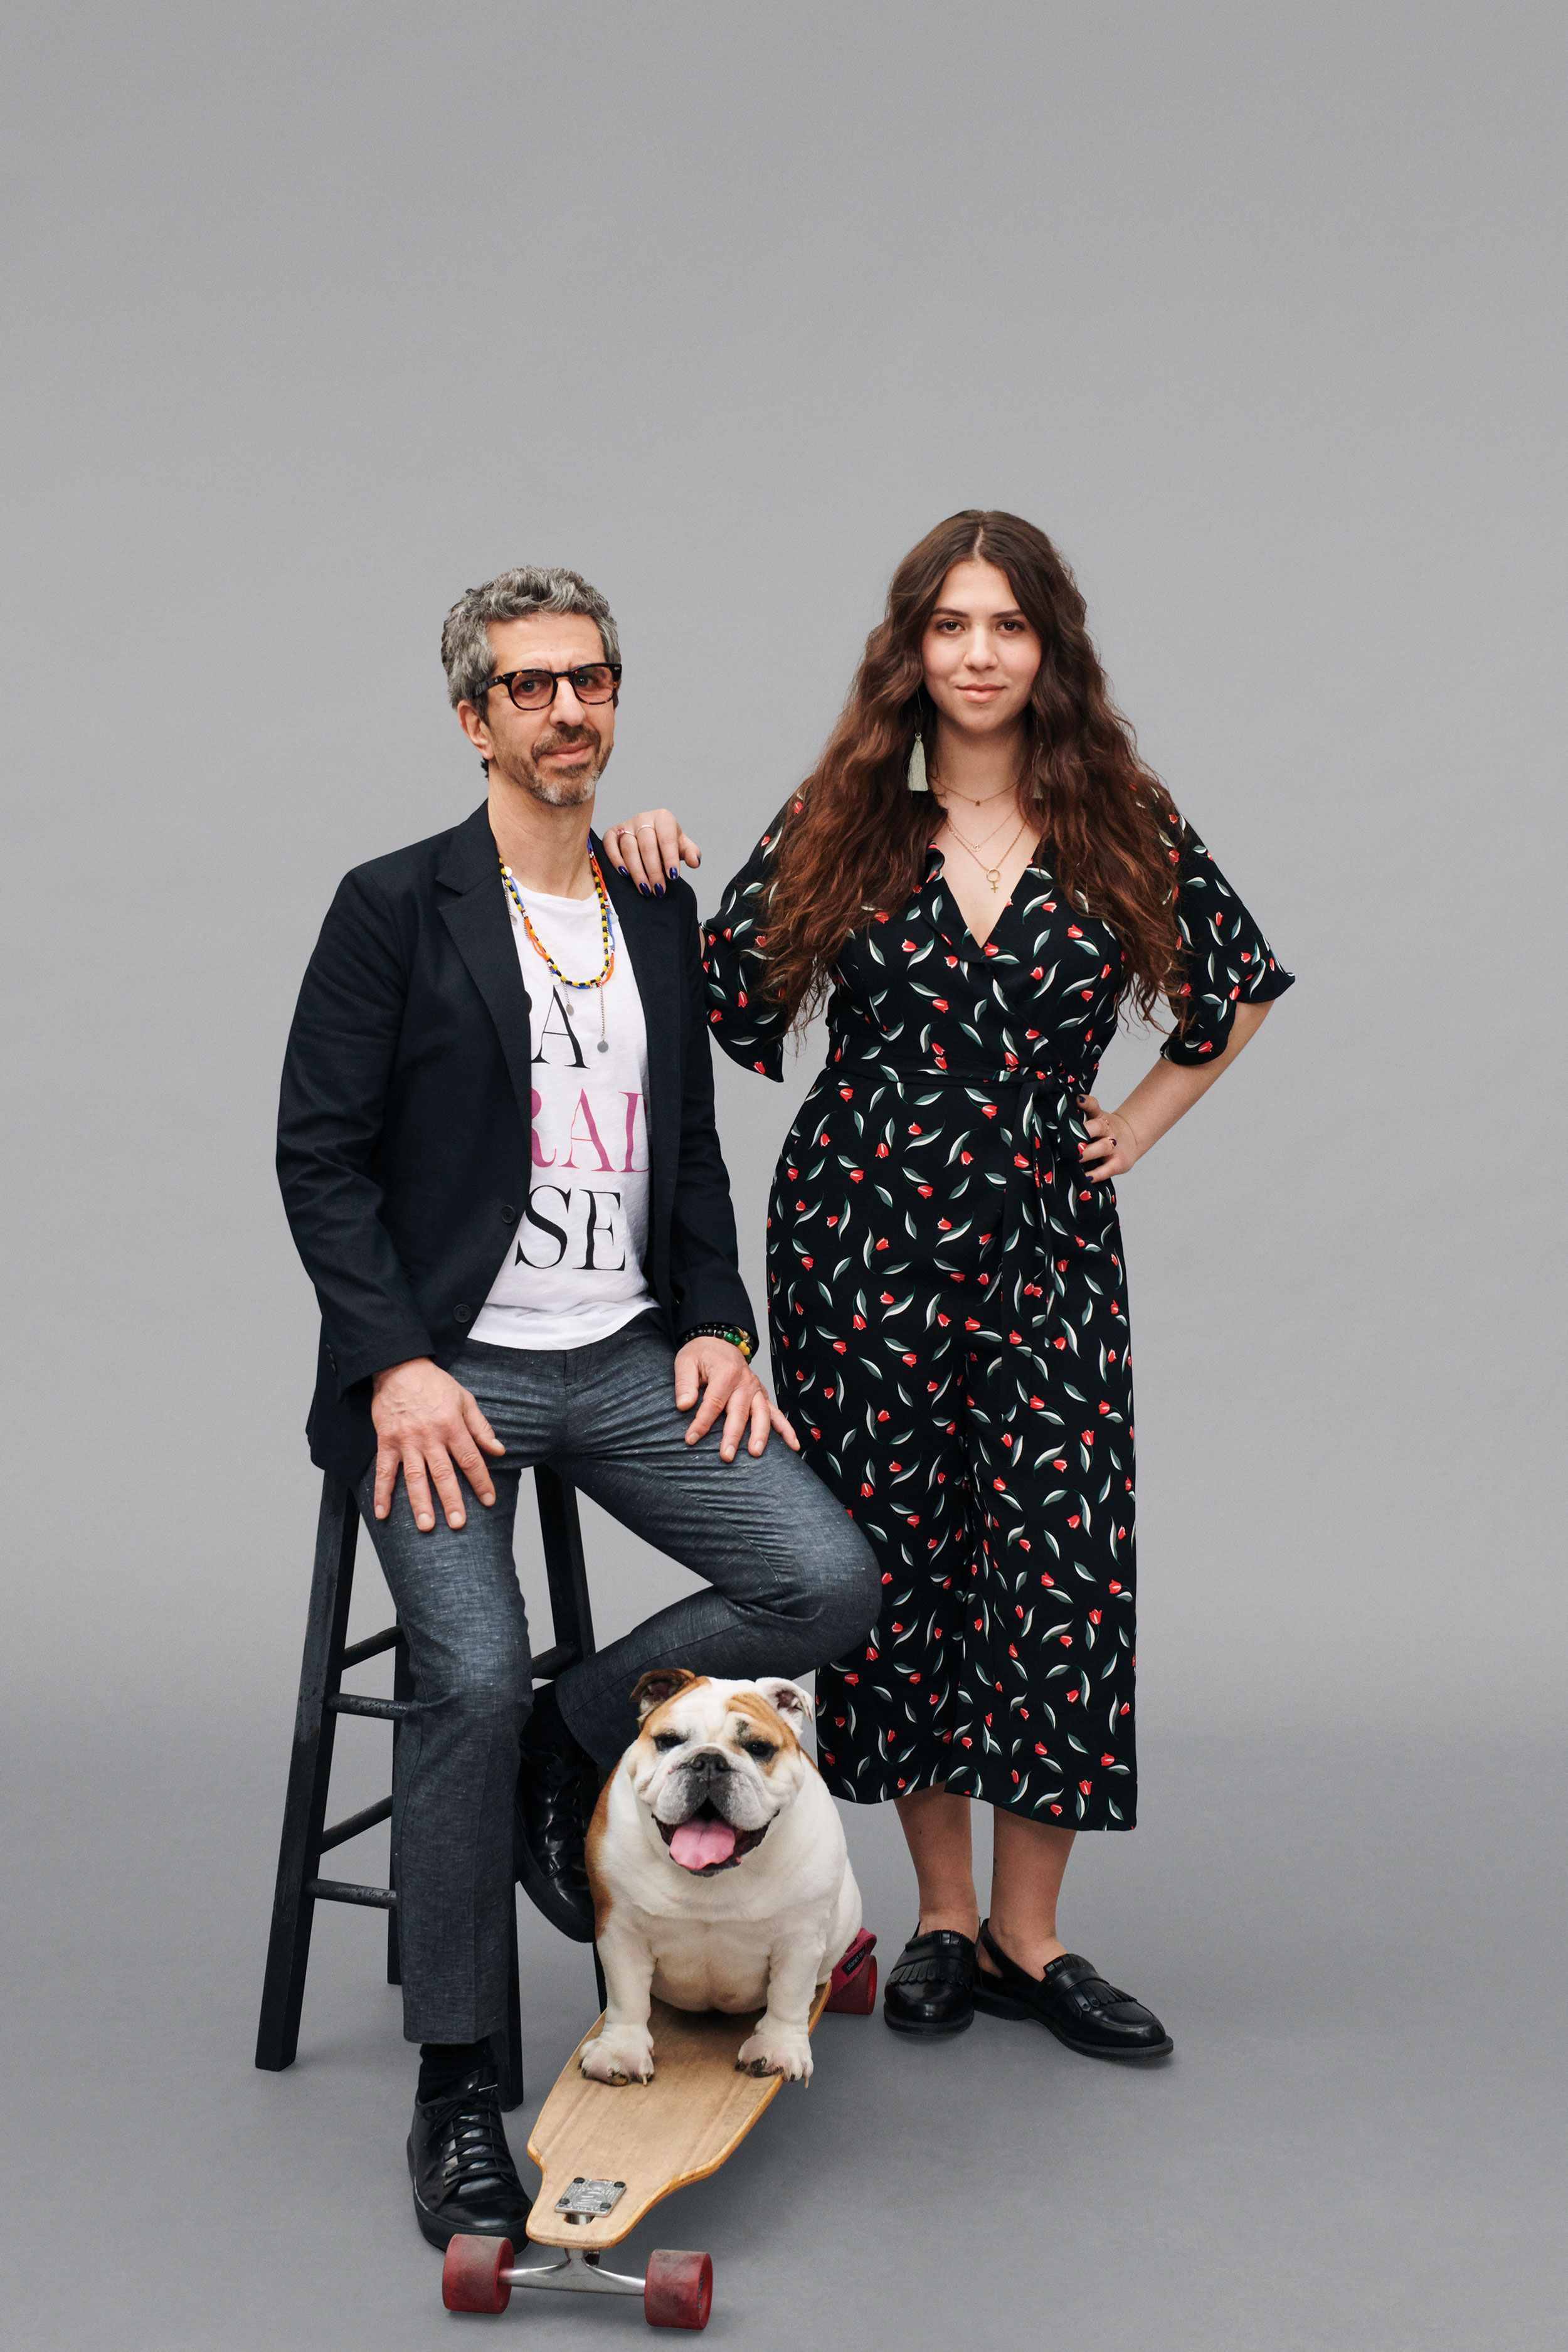 Jason wears the    Tech Blazer (Solid Black)   , the    Limited Edition Graphic Tee (Paradise)   , and the    Linen Trousers (Navy Chambray)